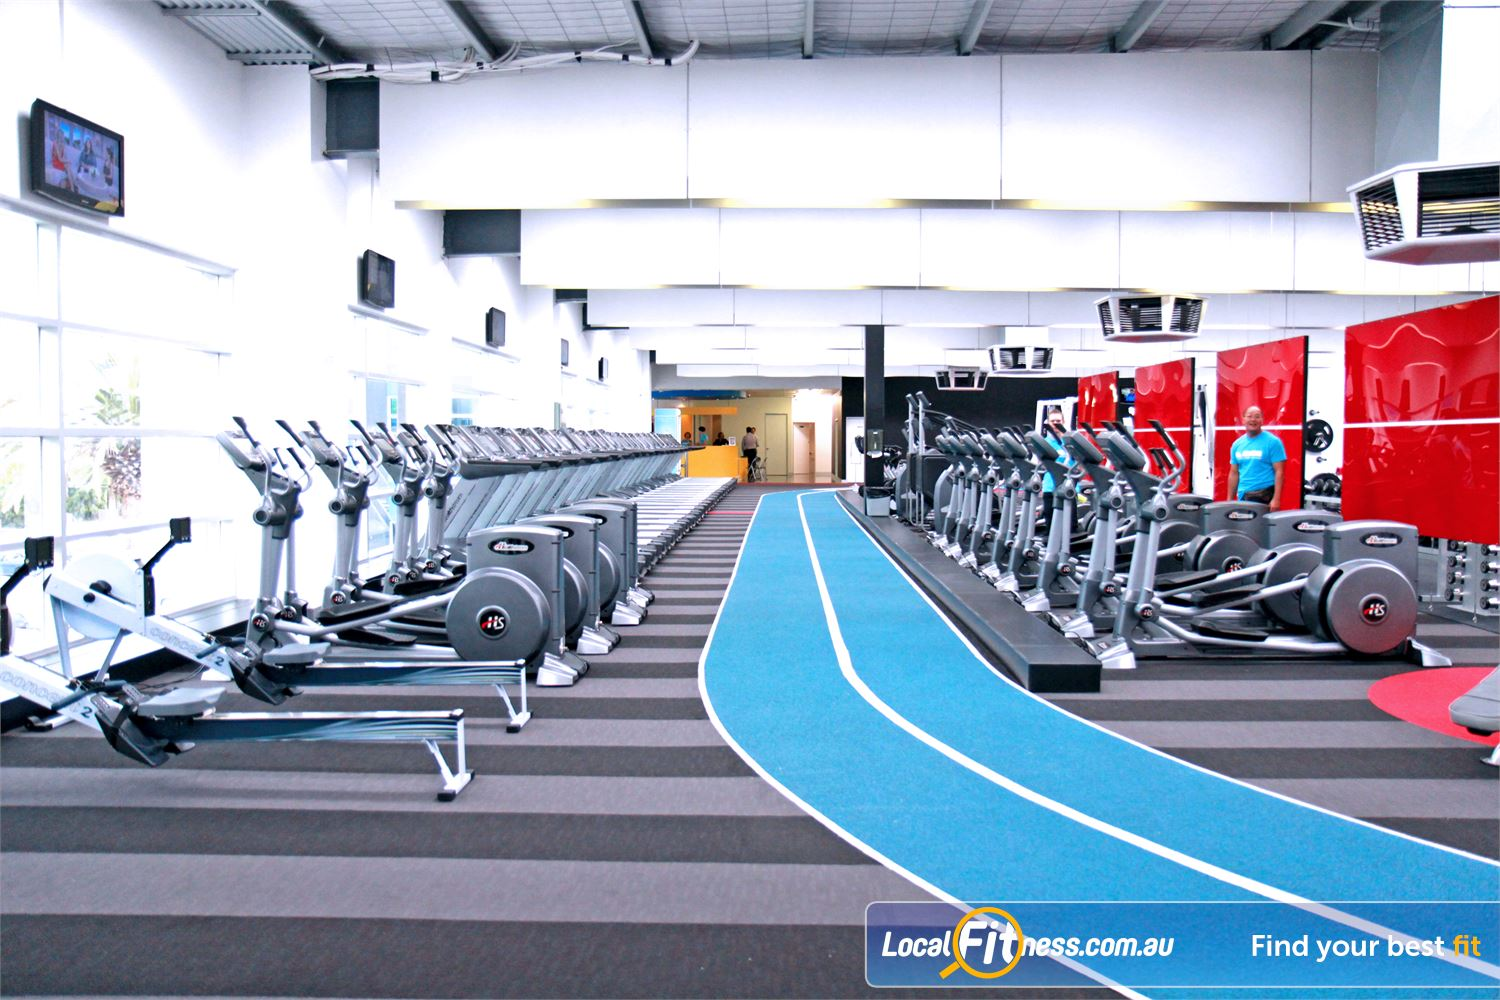 Genesis Fitness Clubs Near Avondale Heights Full rebound athletic track surface.